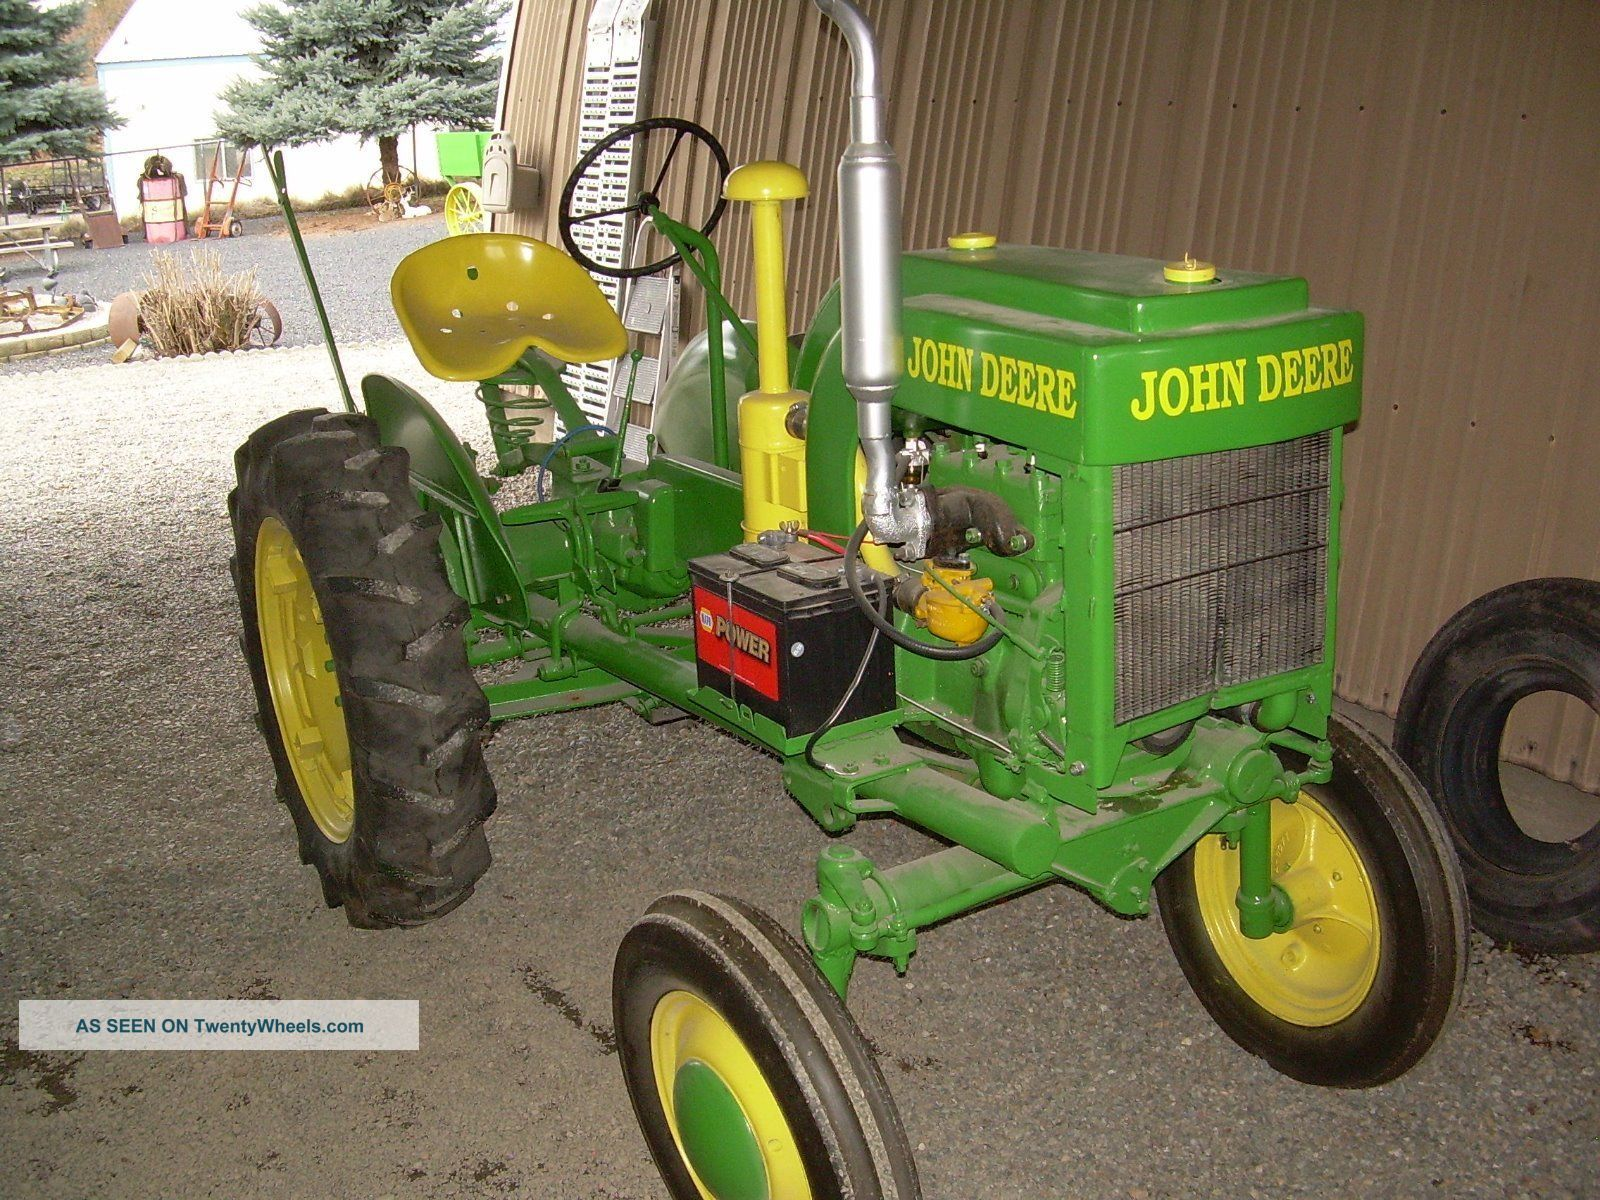 Antique john deere tractor photos The Art of the John Deere Tractor: Featuring Tractors from